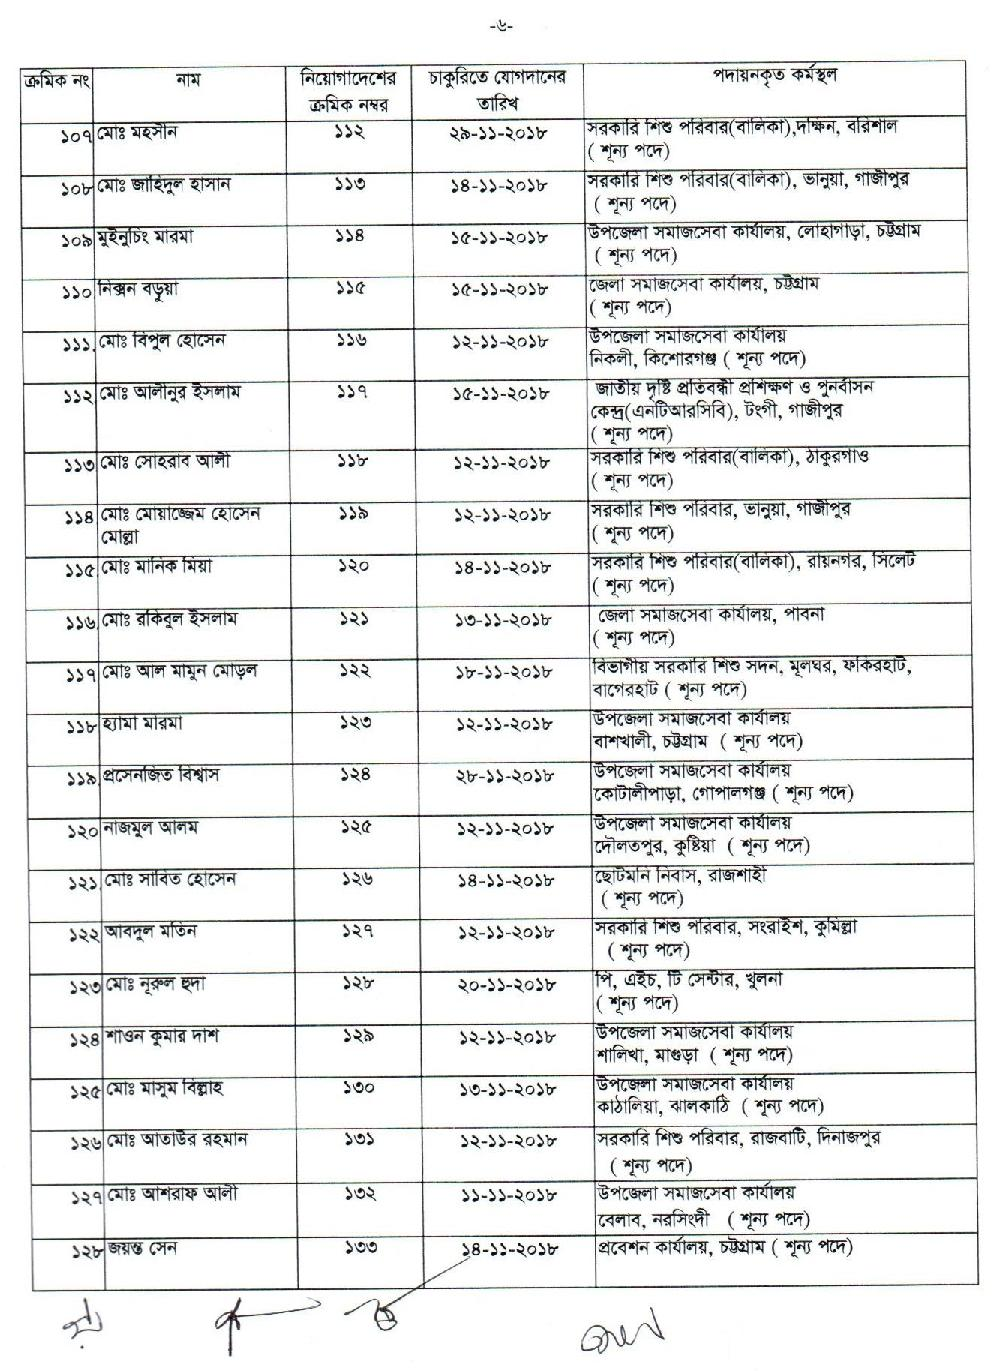 DSS Final Result And Appointment Circular 2018 5